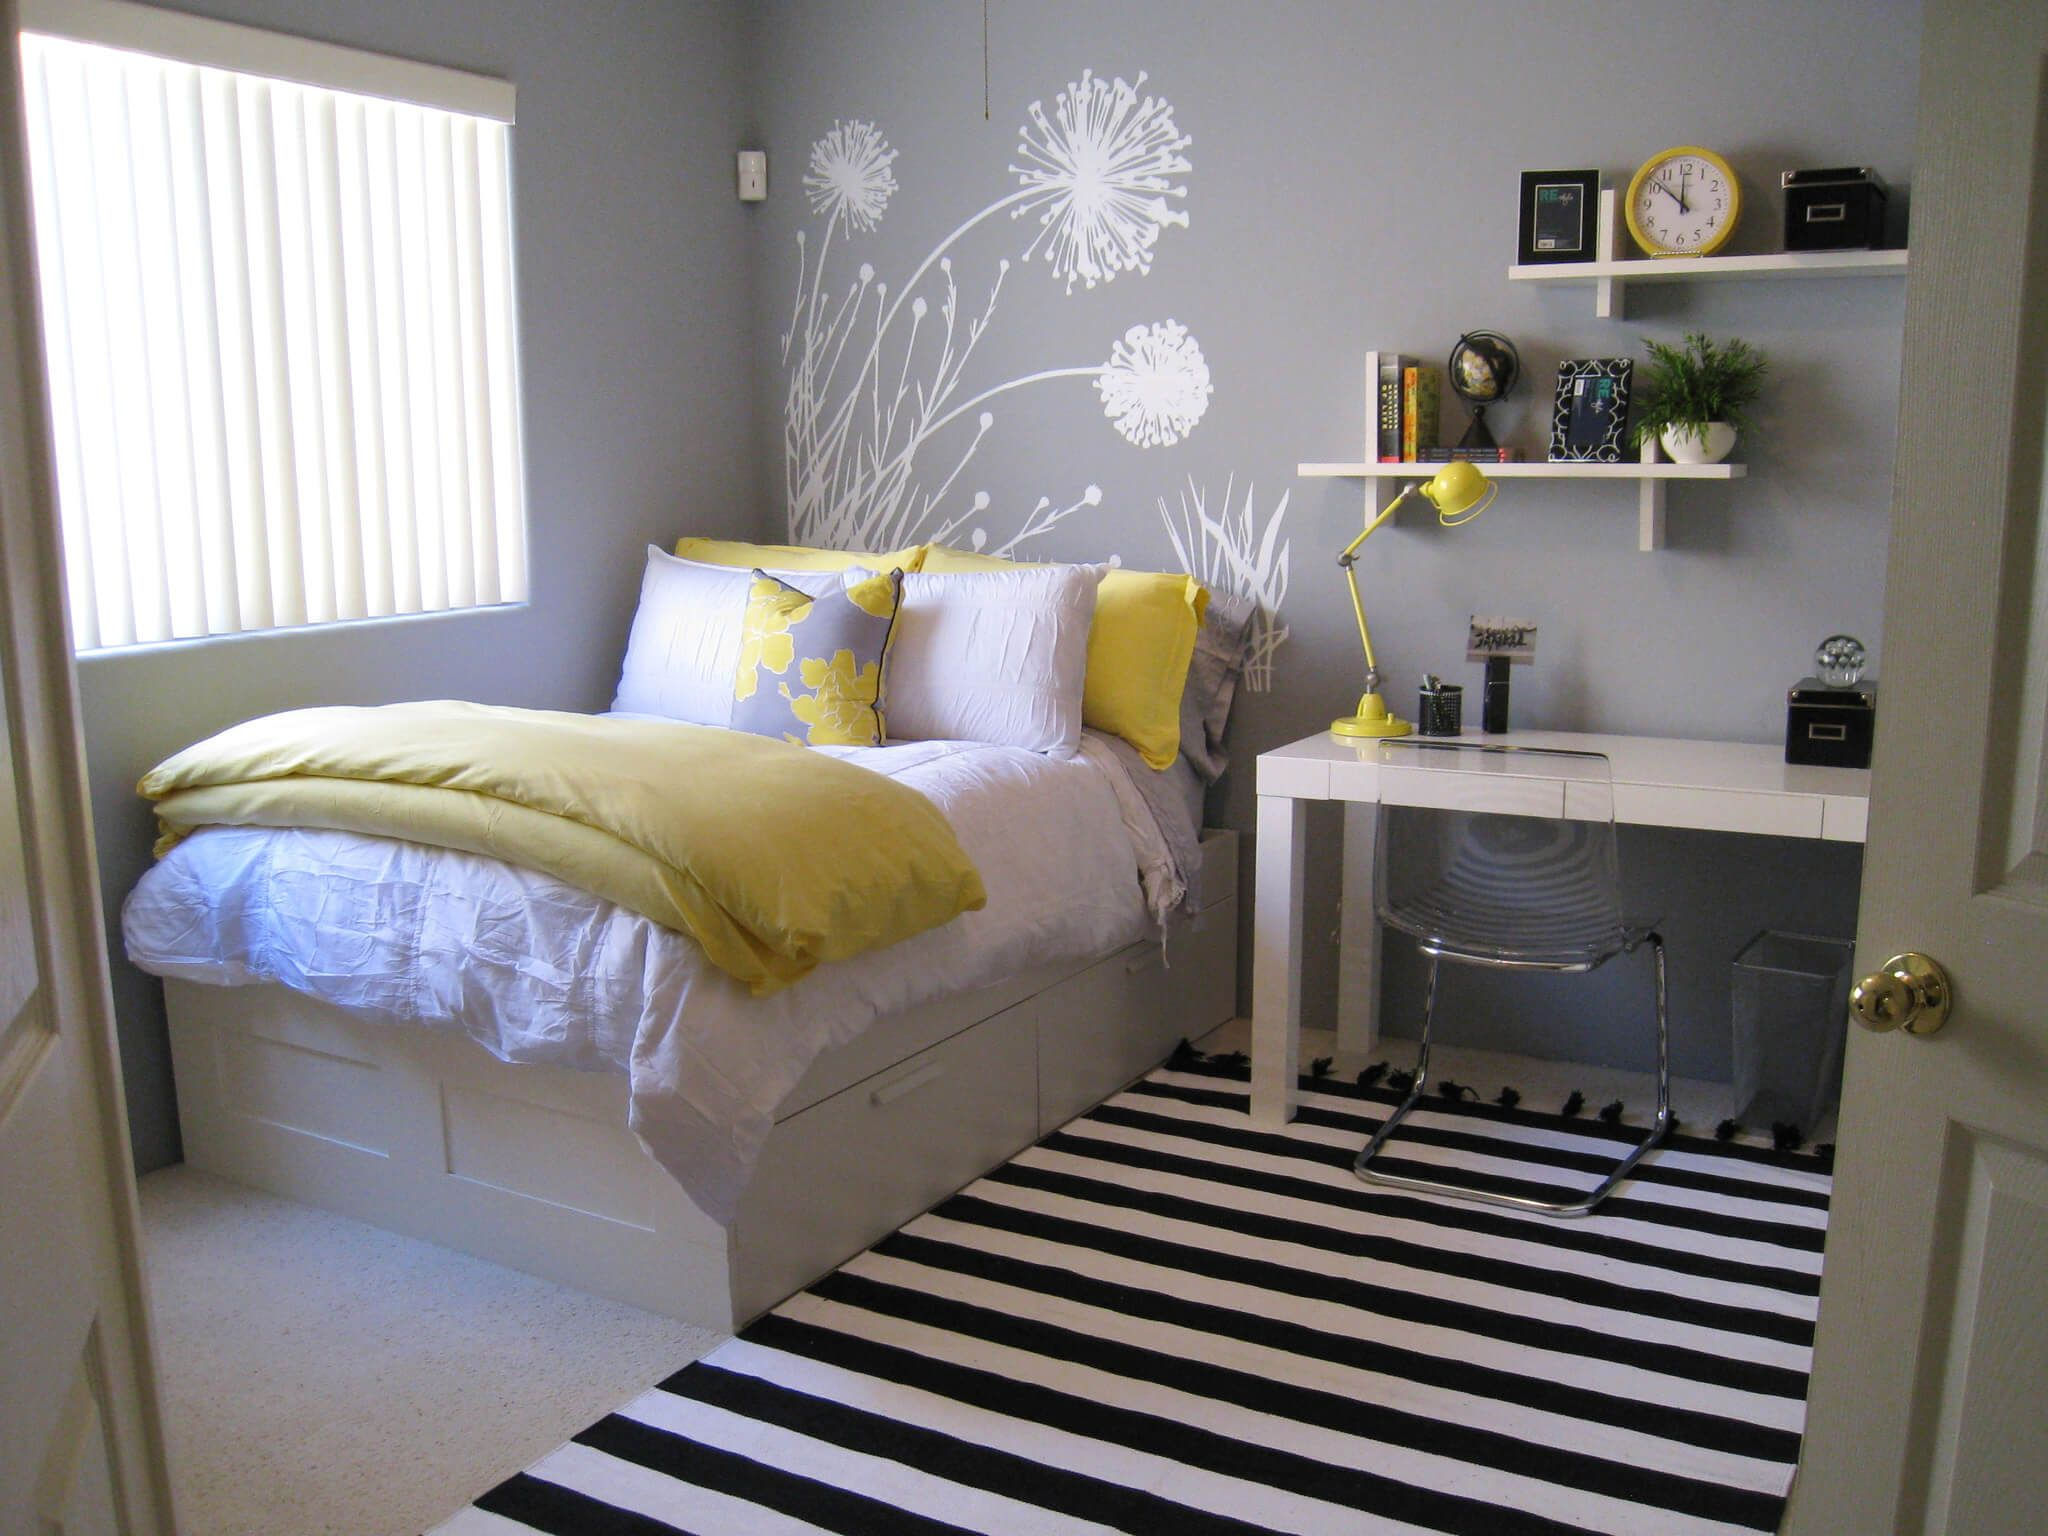 45 Inspiring Small Bedrooms. 17  best ideas about Small Bedrooms on Pinterest   Small bedrooms